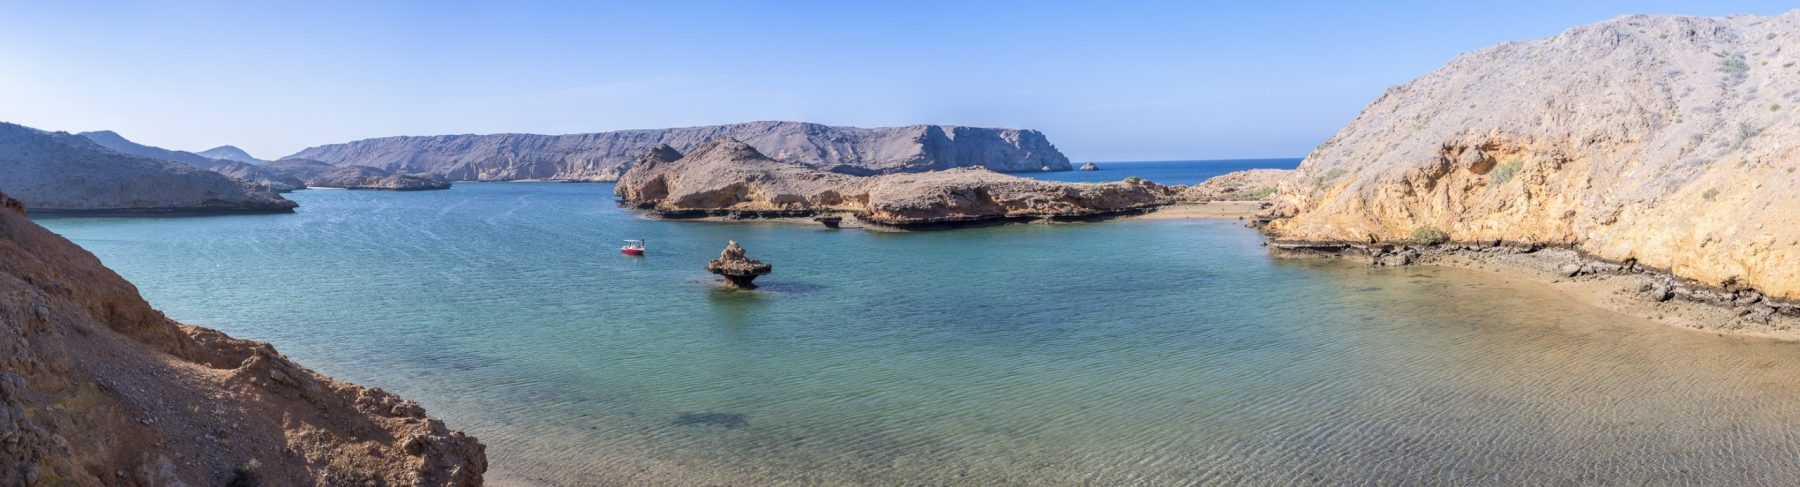 Panoramic view of the wild Coast of Bandar Khairan with clear water of the ocean and the arid mountains, Sultanate of Oman